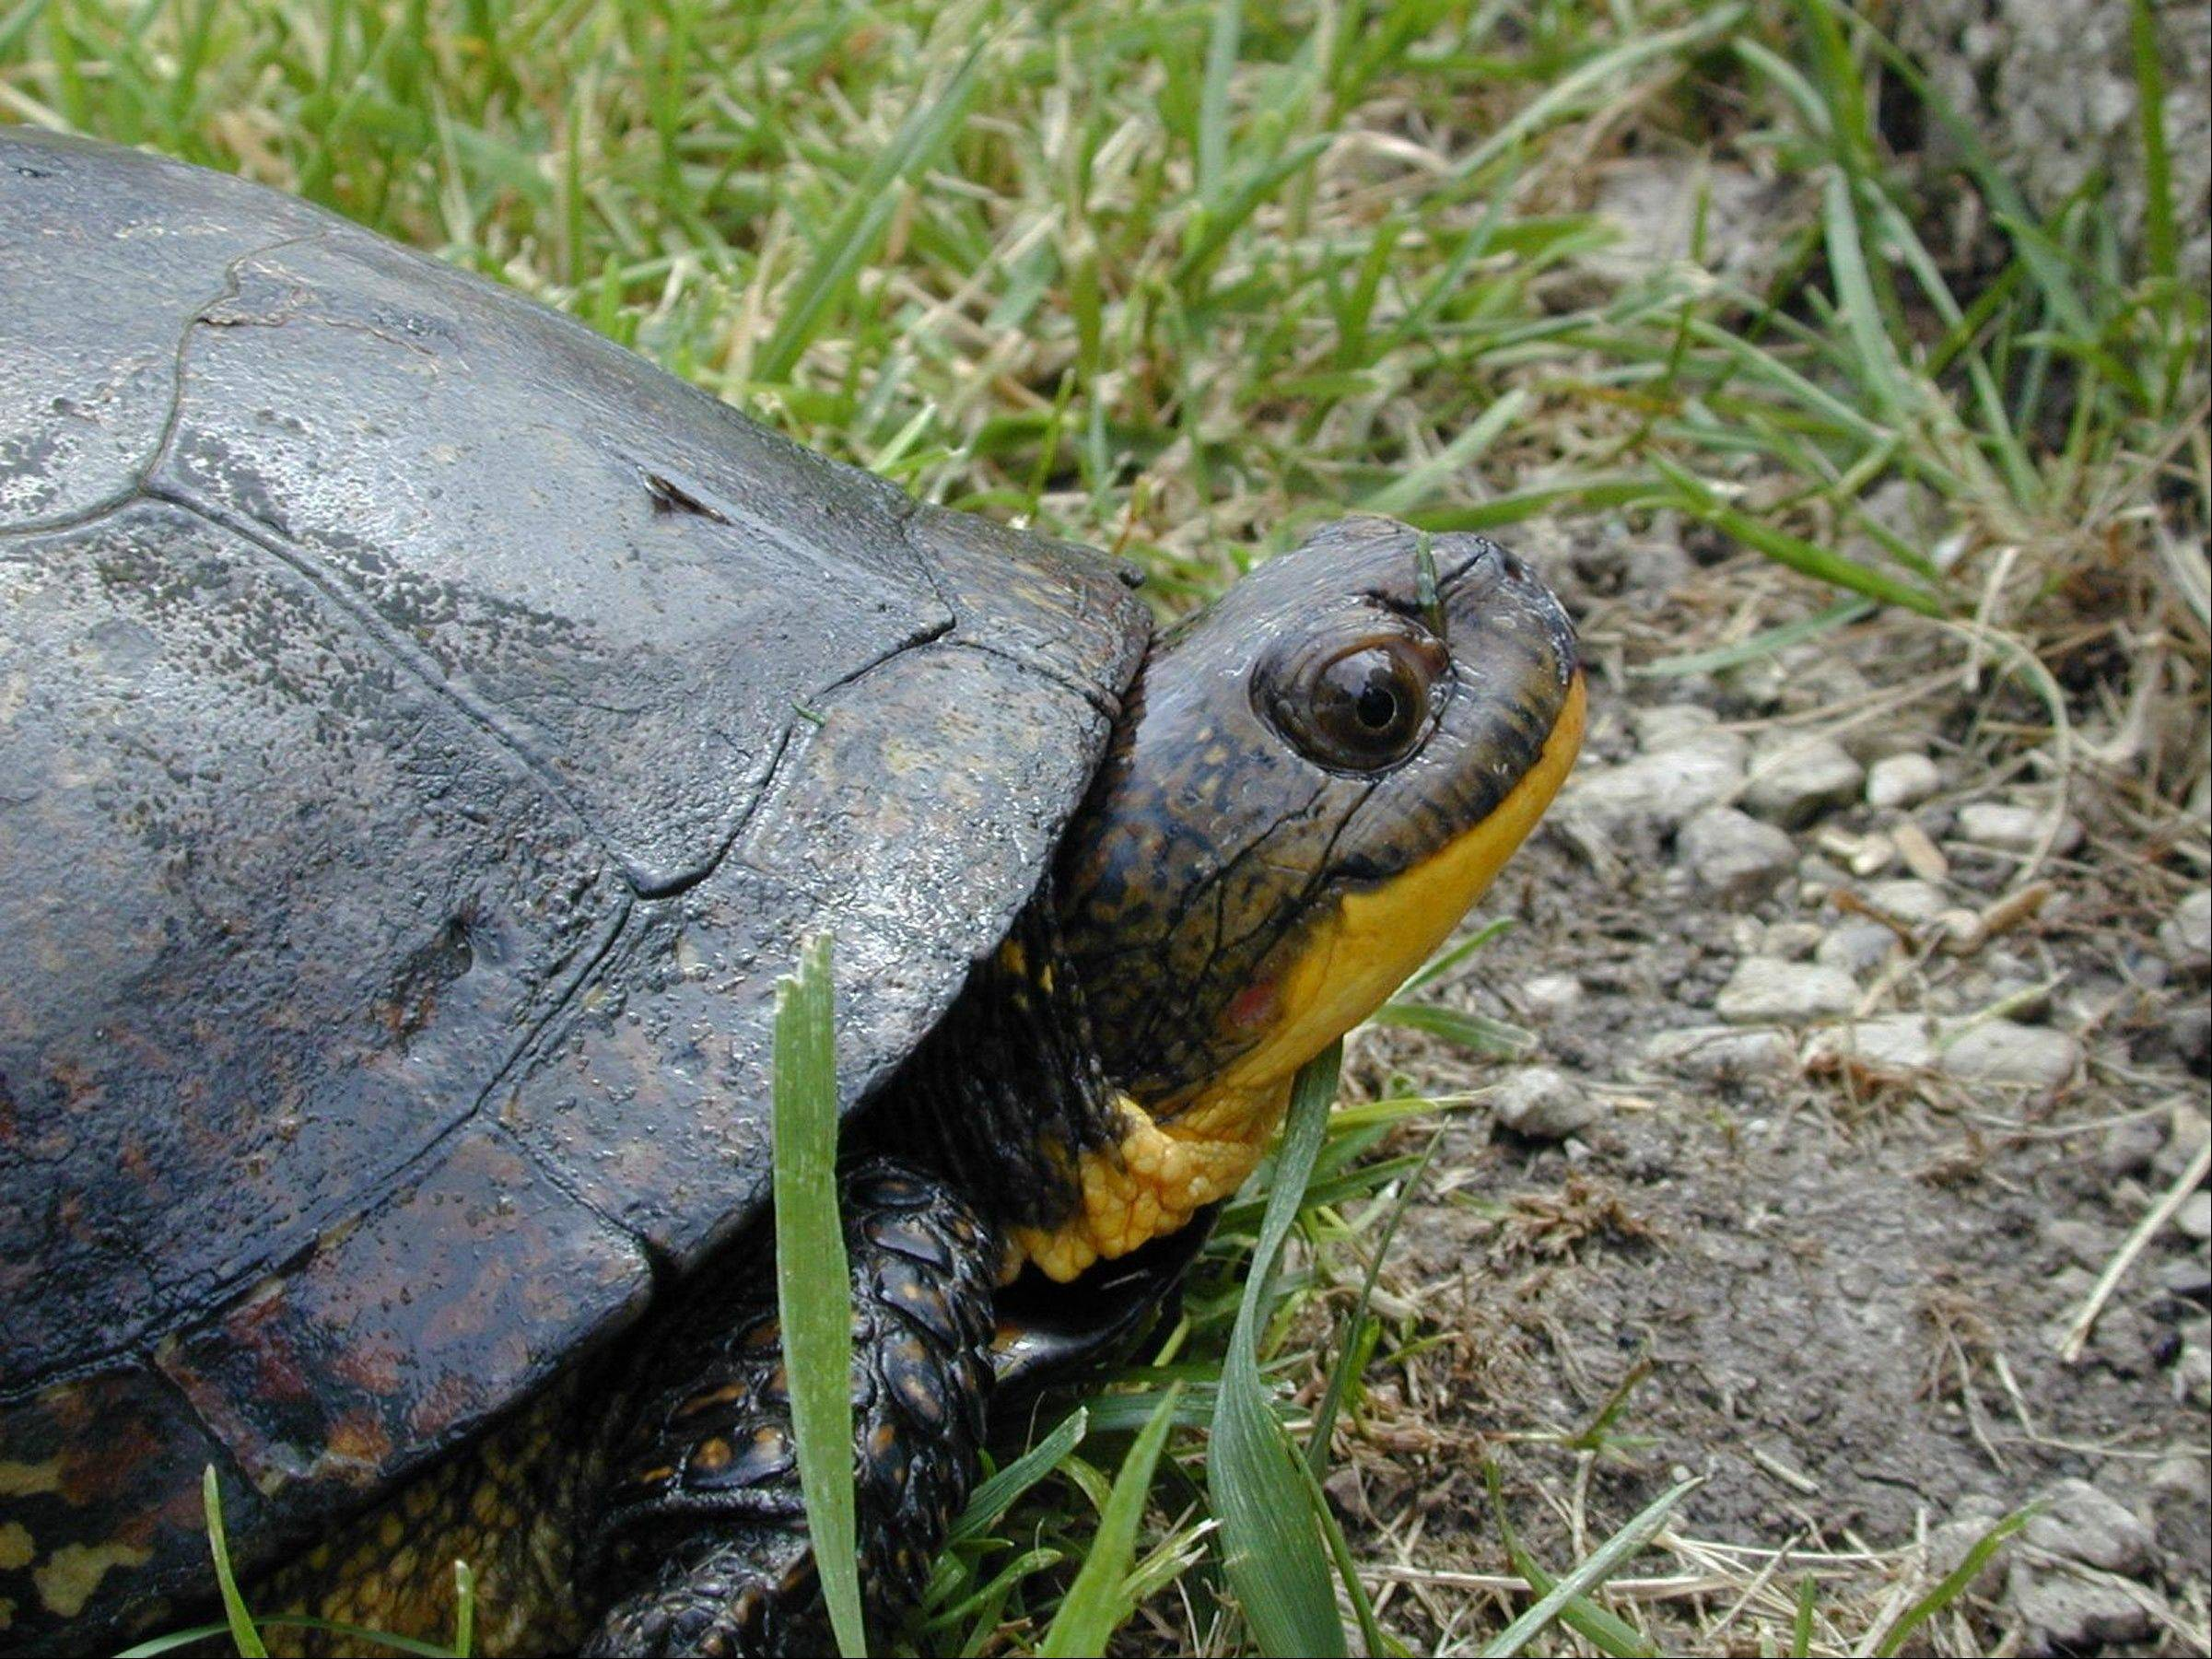 People have been known to take turtles from the wild. It's never a good idea, says naturalist Valerie Blaine. Shown is a Blanding's Turtle, an endangered species, at the Cosley Zoo in Wheaton.